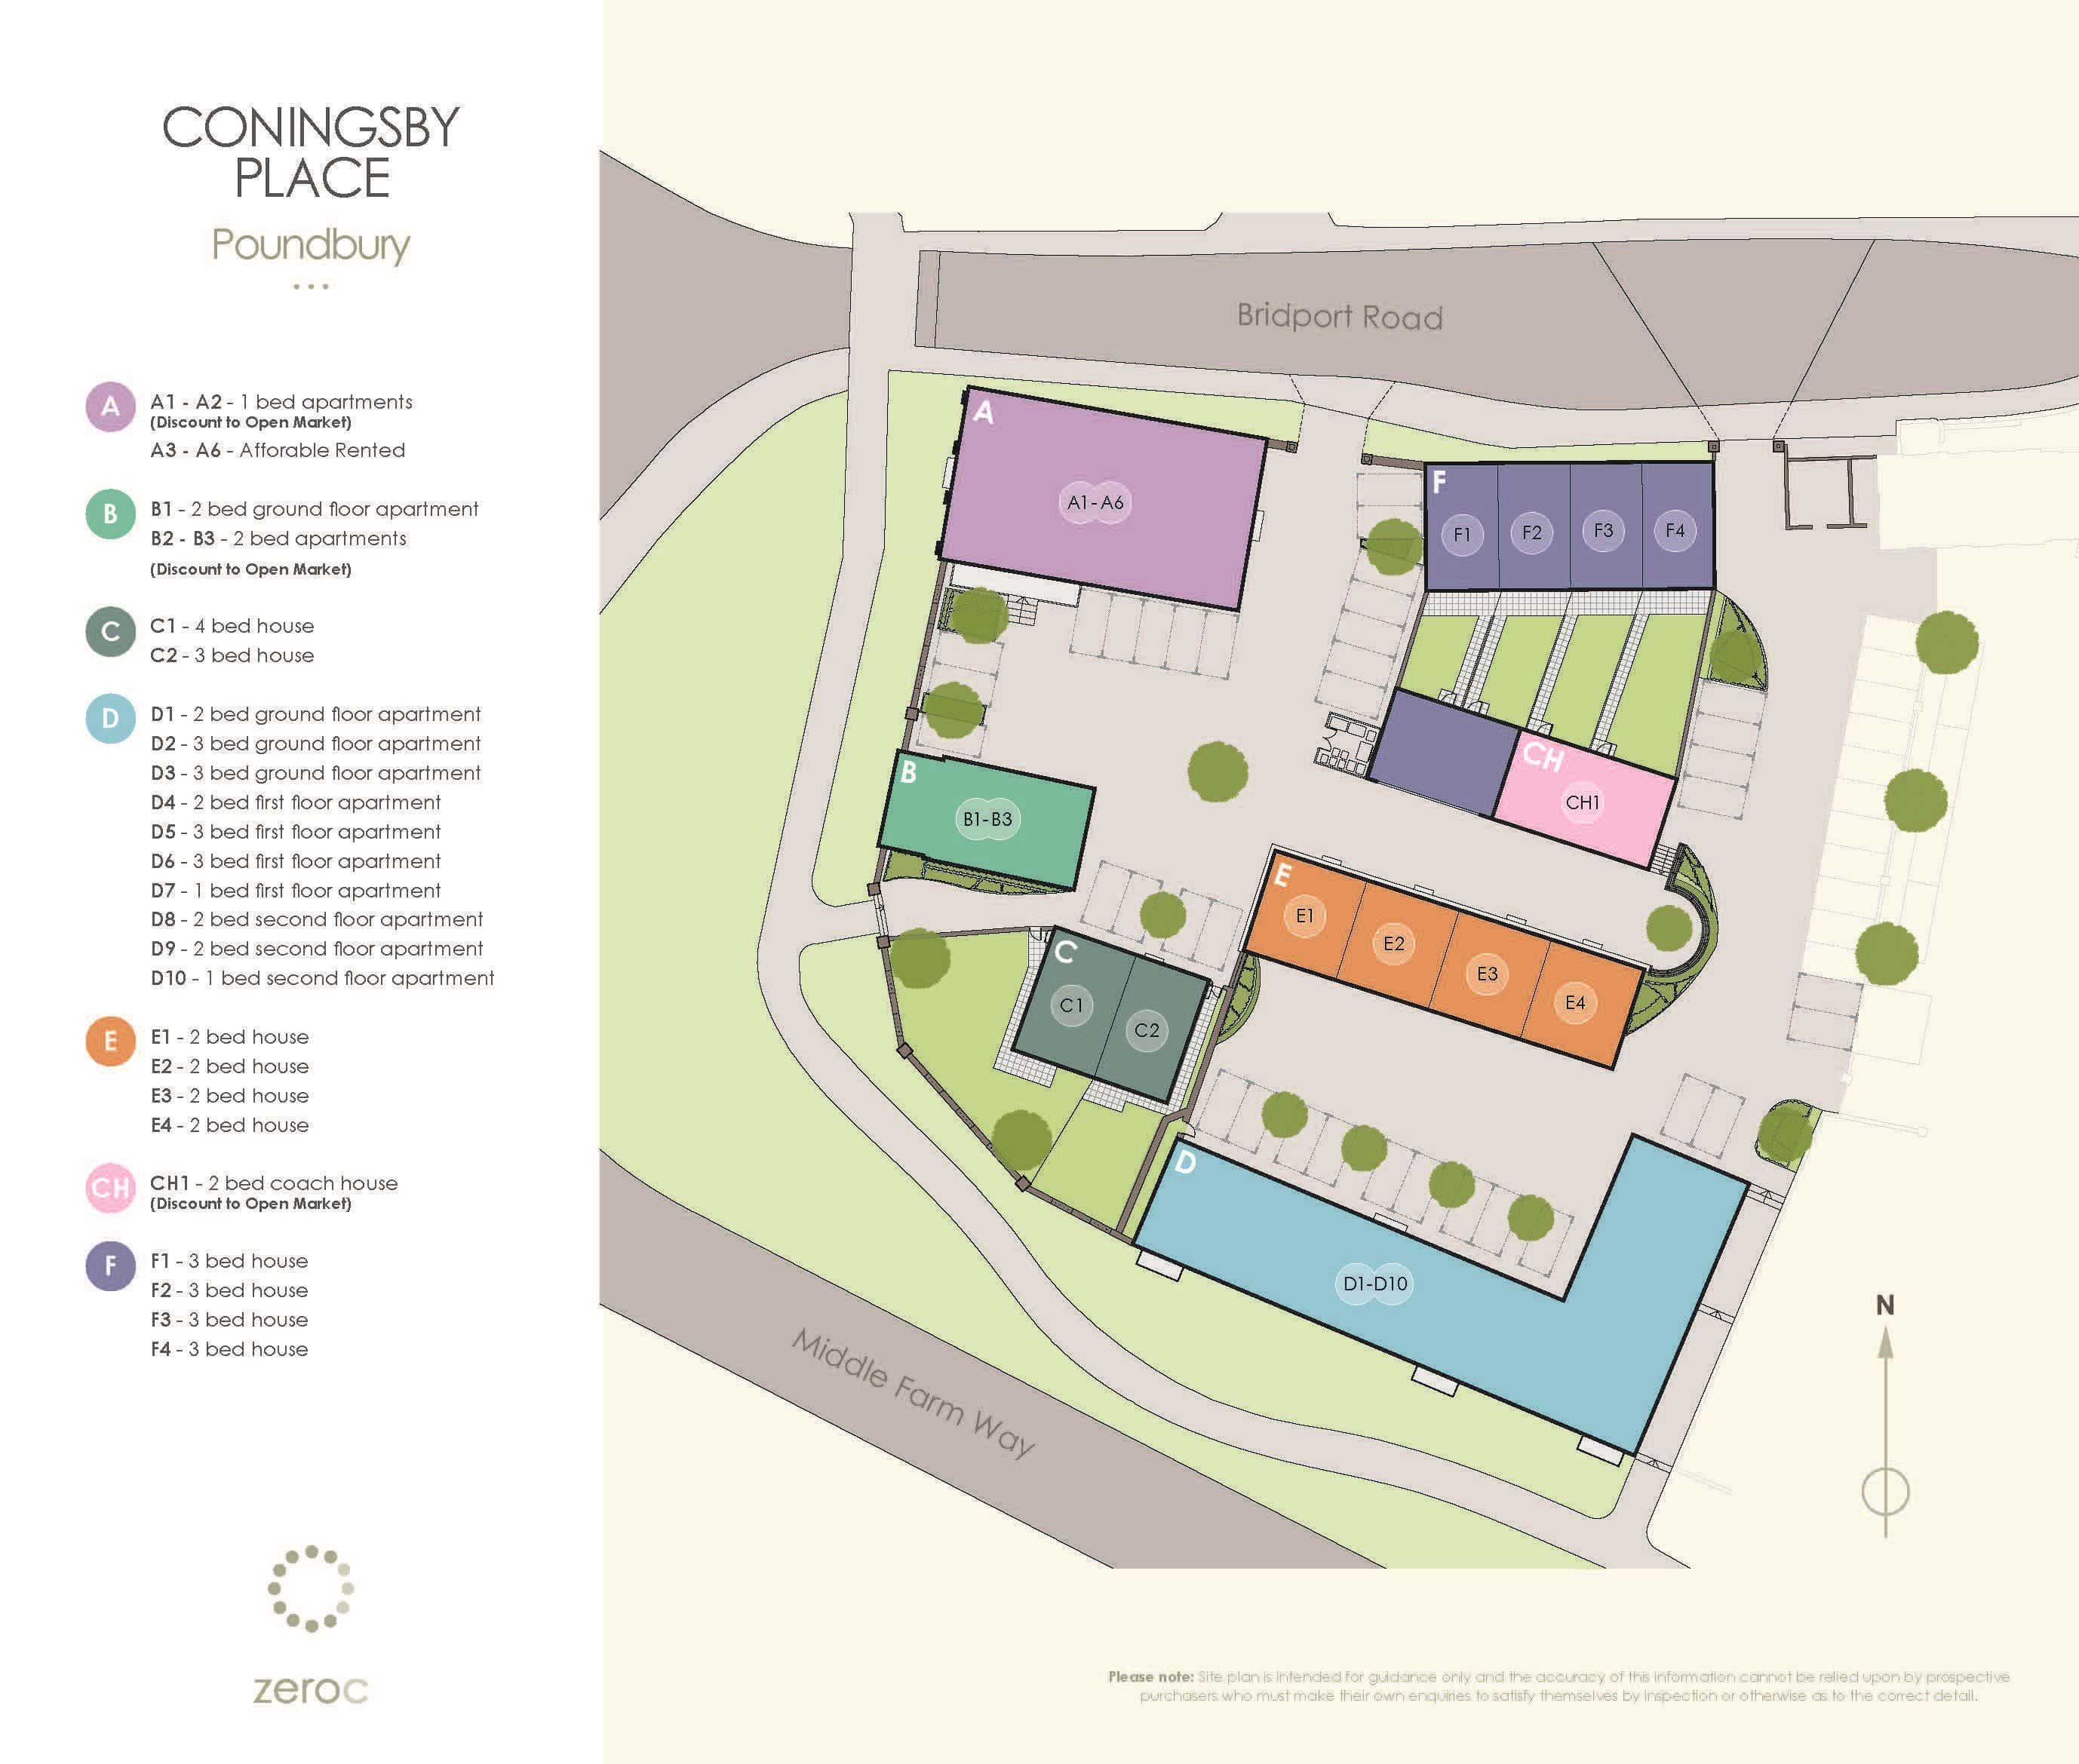 Coningsby Place site plan